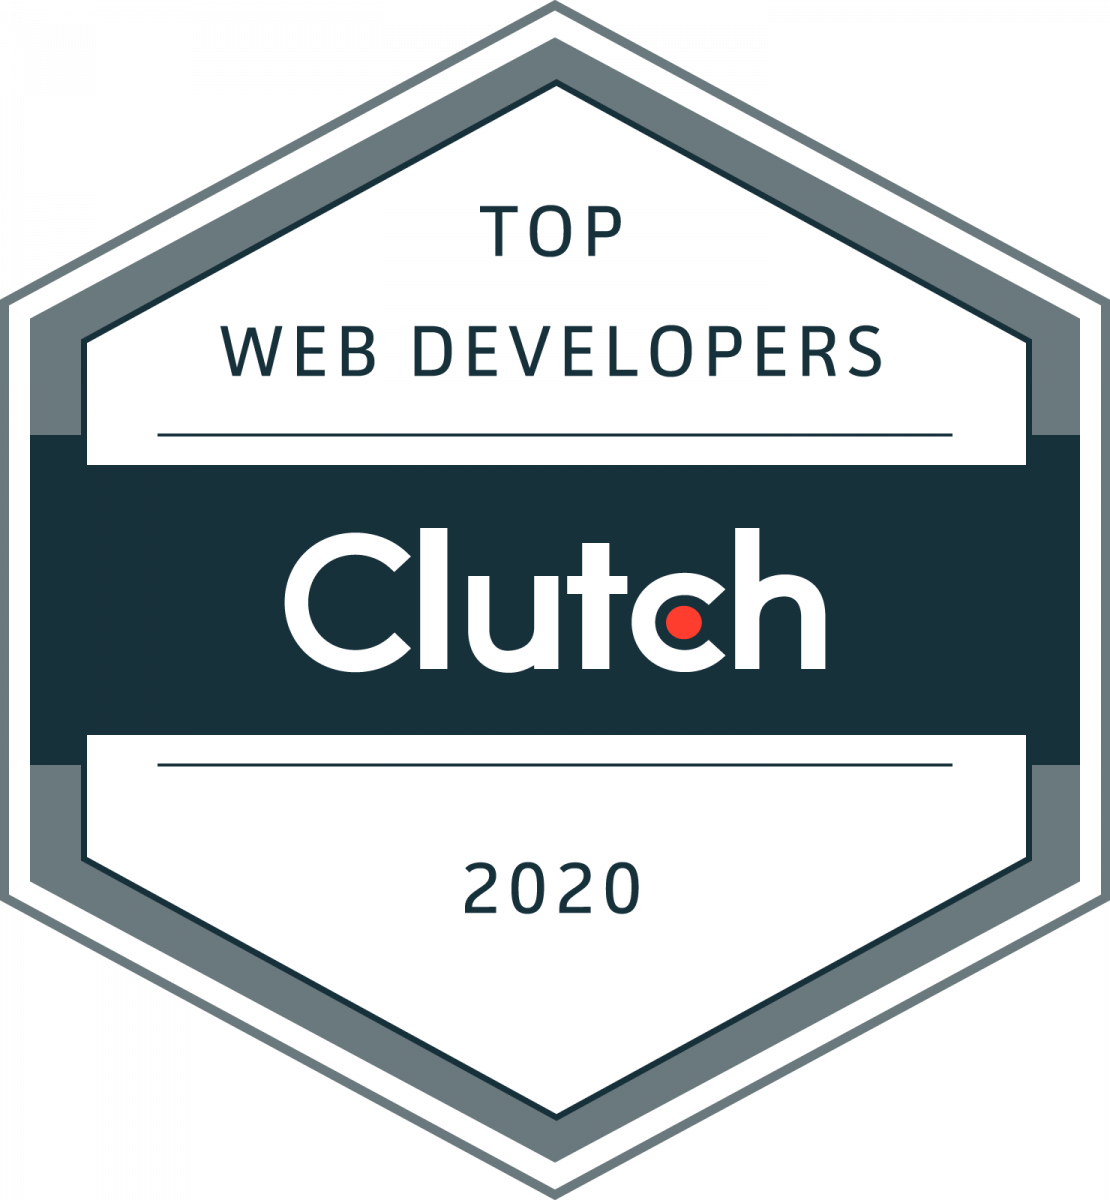 Clutch 2020 Badge